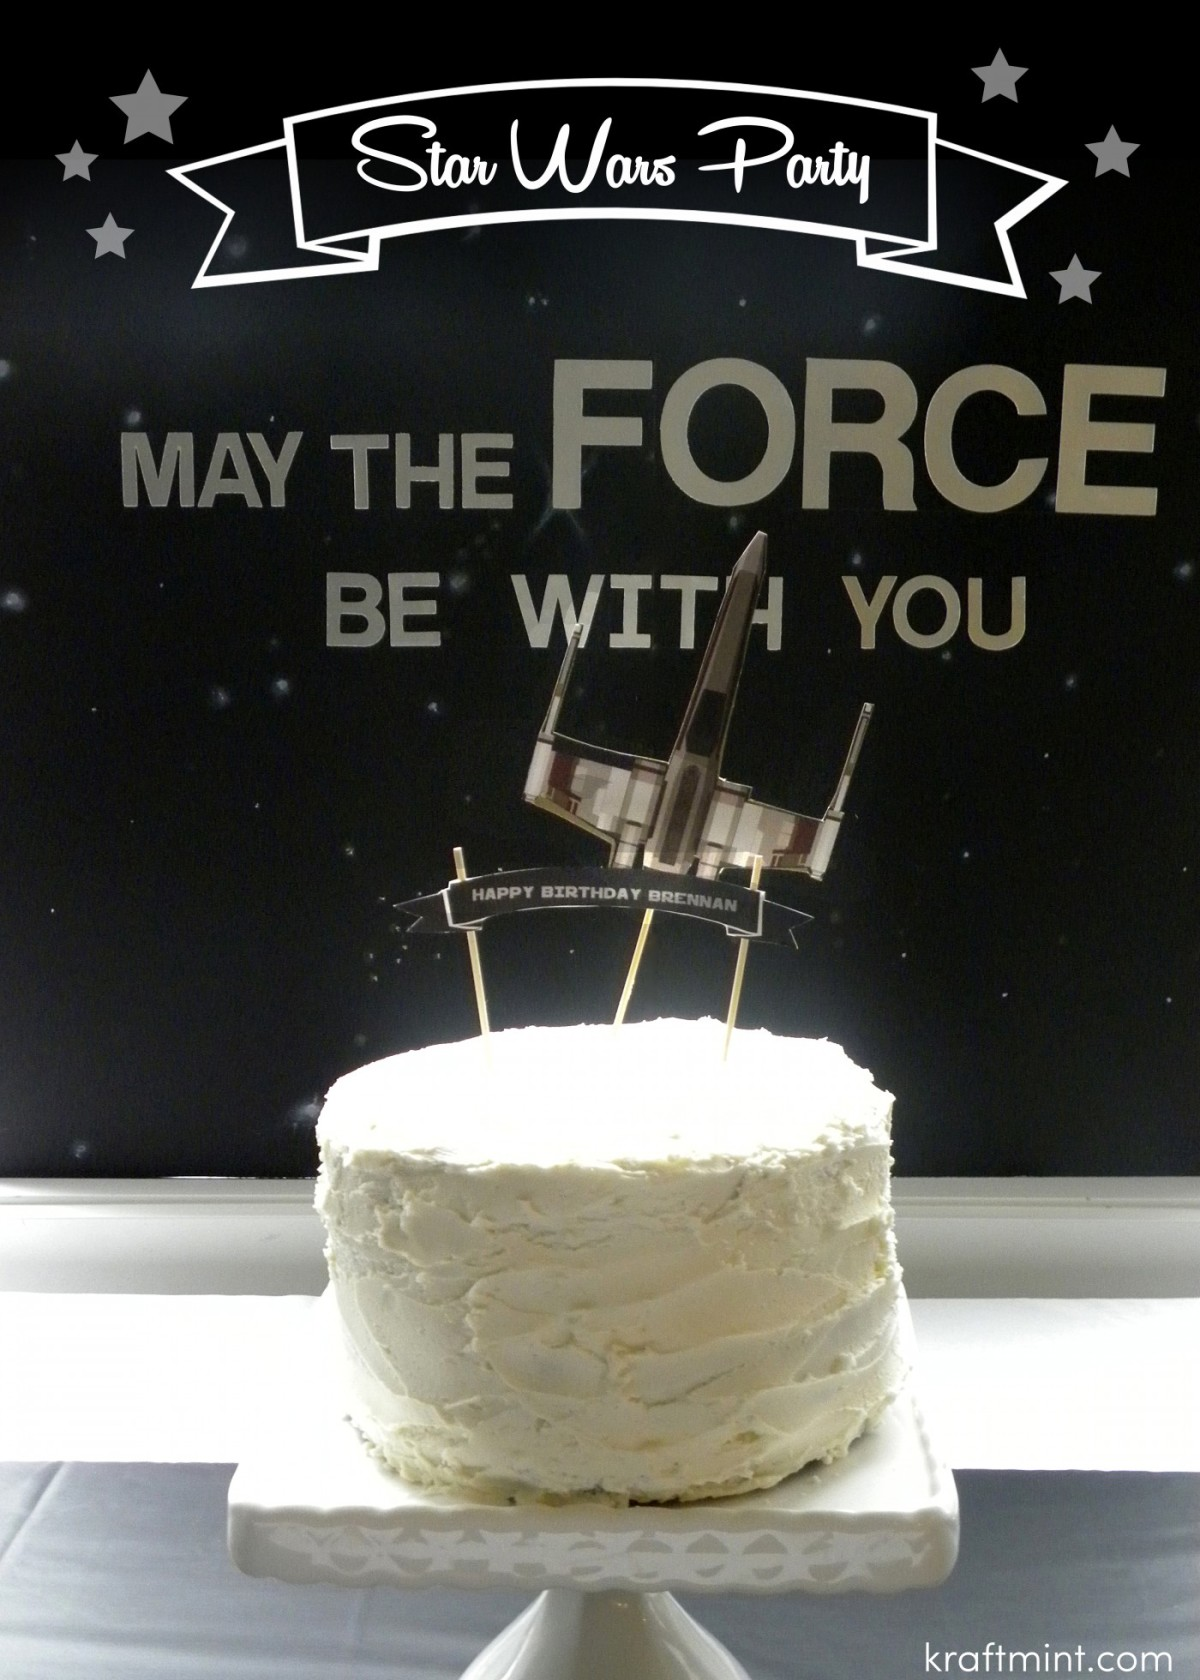 Parties: Lego Star Wars Party